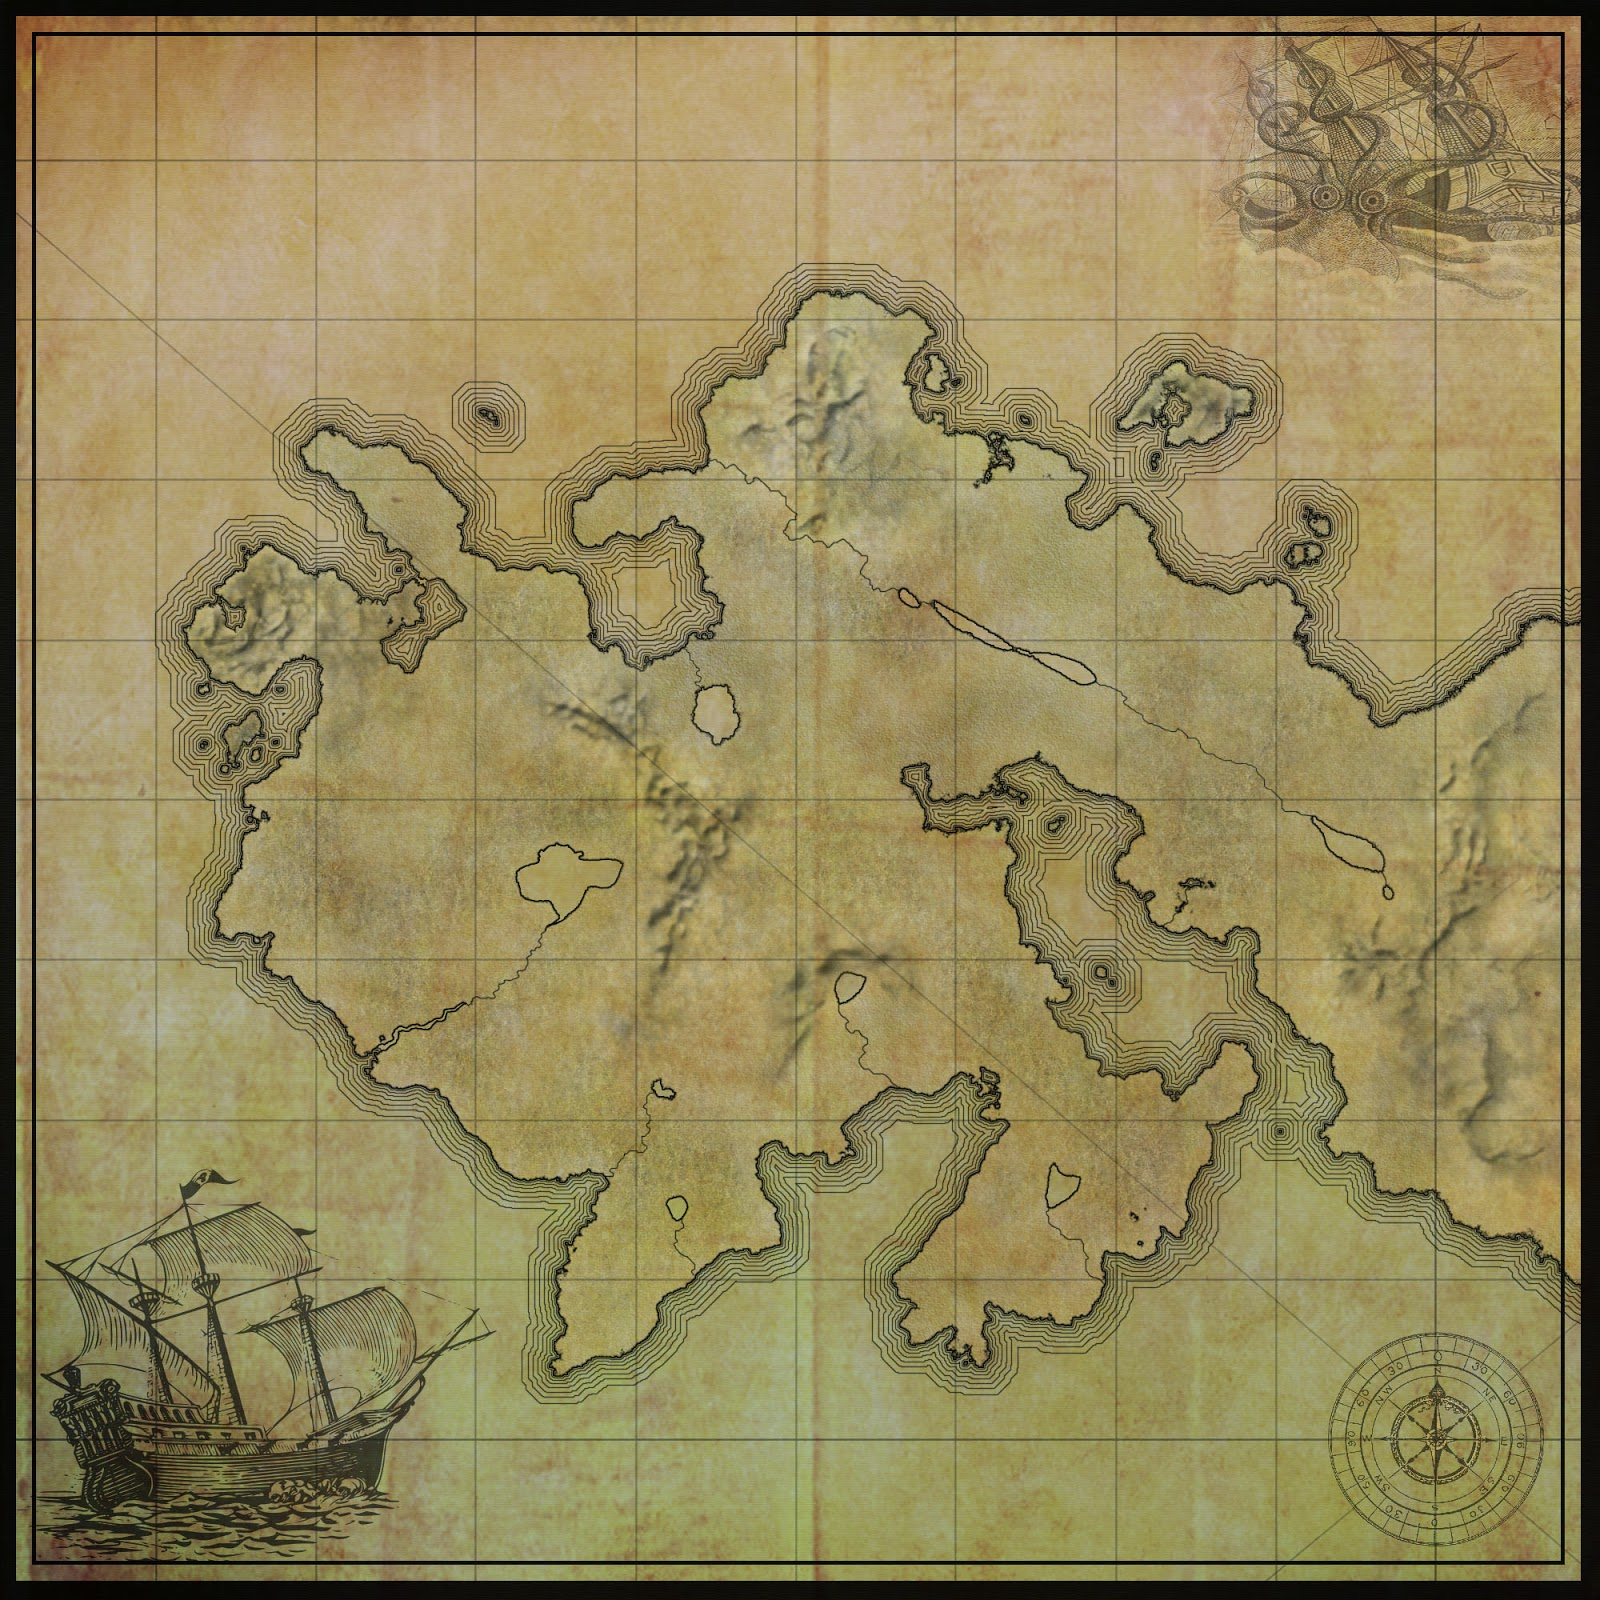 i like this map because it s an old style map but was created recently if you look closely at it you can see how regimented and exact all the lines are